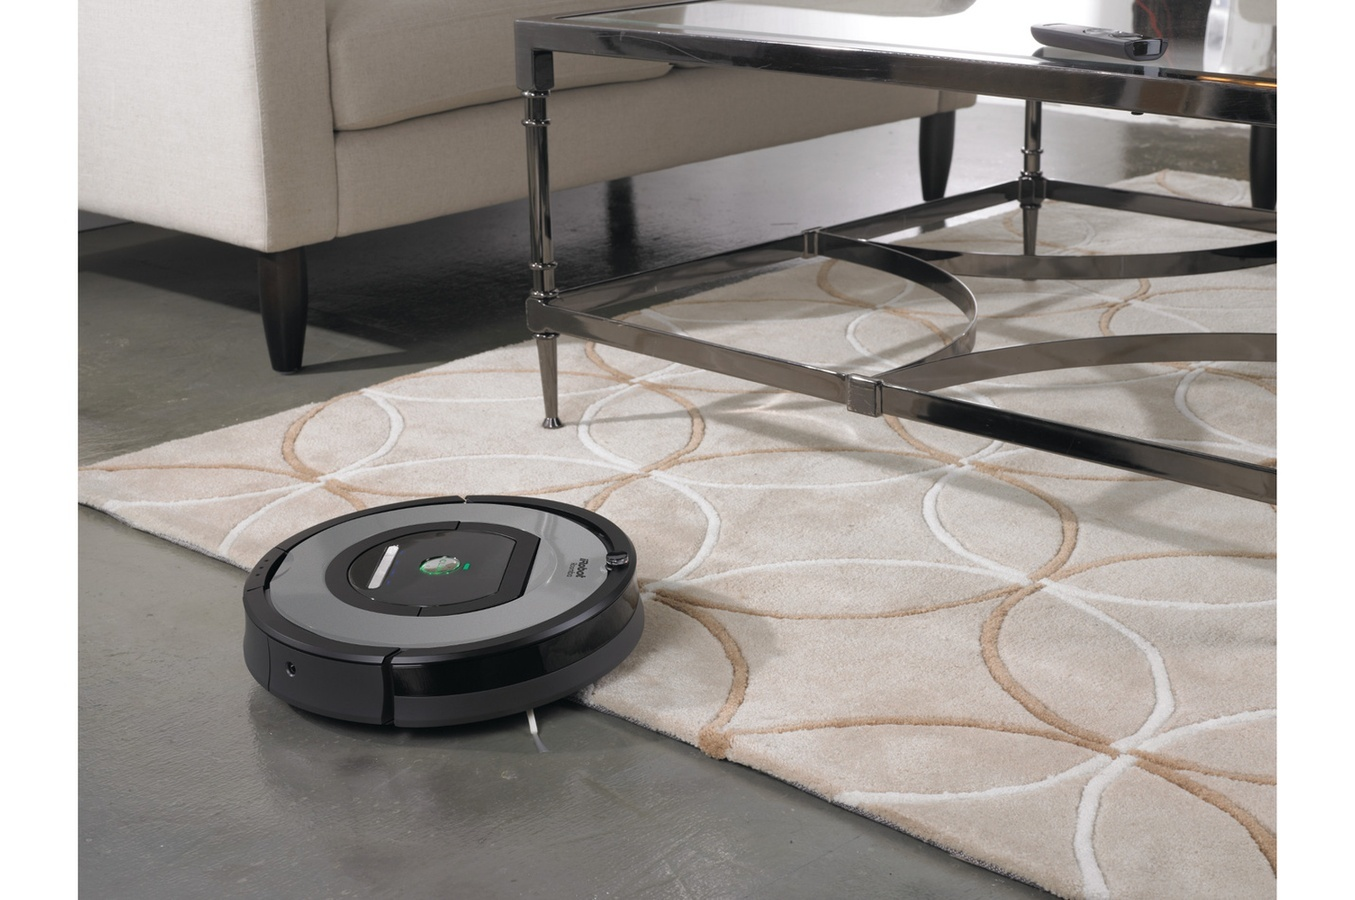 irobot roomba 774 aspirateur robot rob774 achat. Black Bedroom Furniture Sets. Home Design Ideas